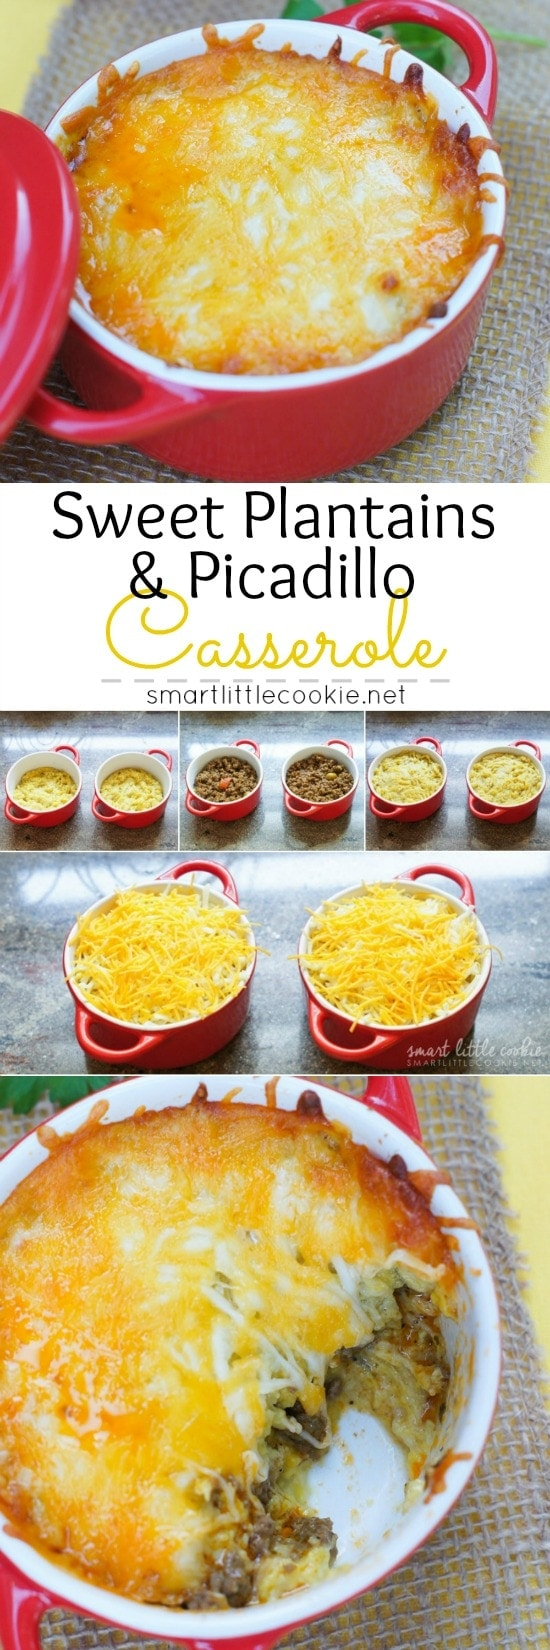 Sweet Plantains and Picadillo Casserole ~ Layers of mashed sweet ripe plantains with a filling of savory picadillo - a Latin dish of ground meat, tomatoes, and spices - make this dish a delicious and easy dinner.